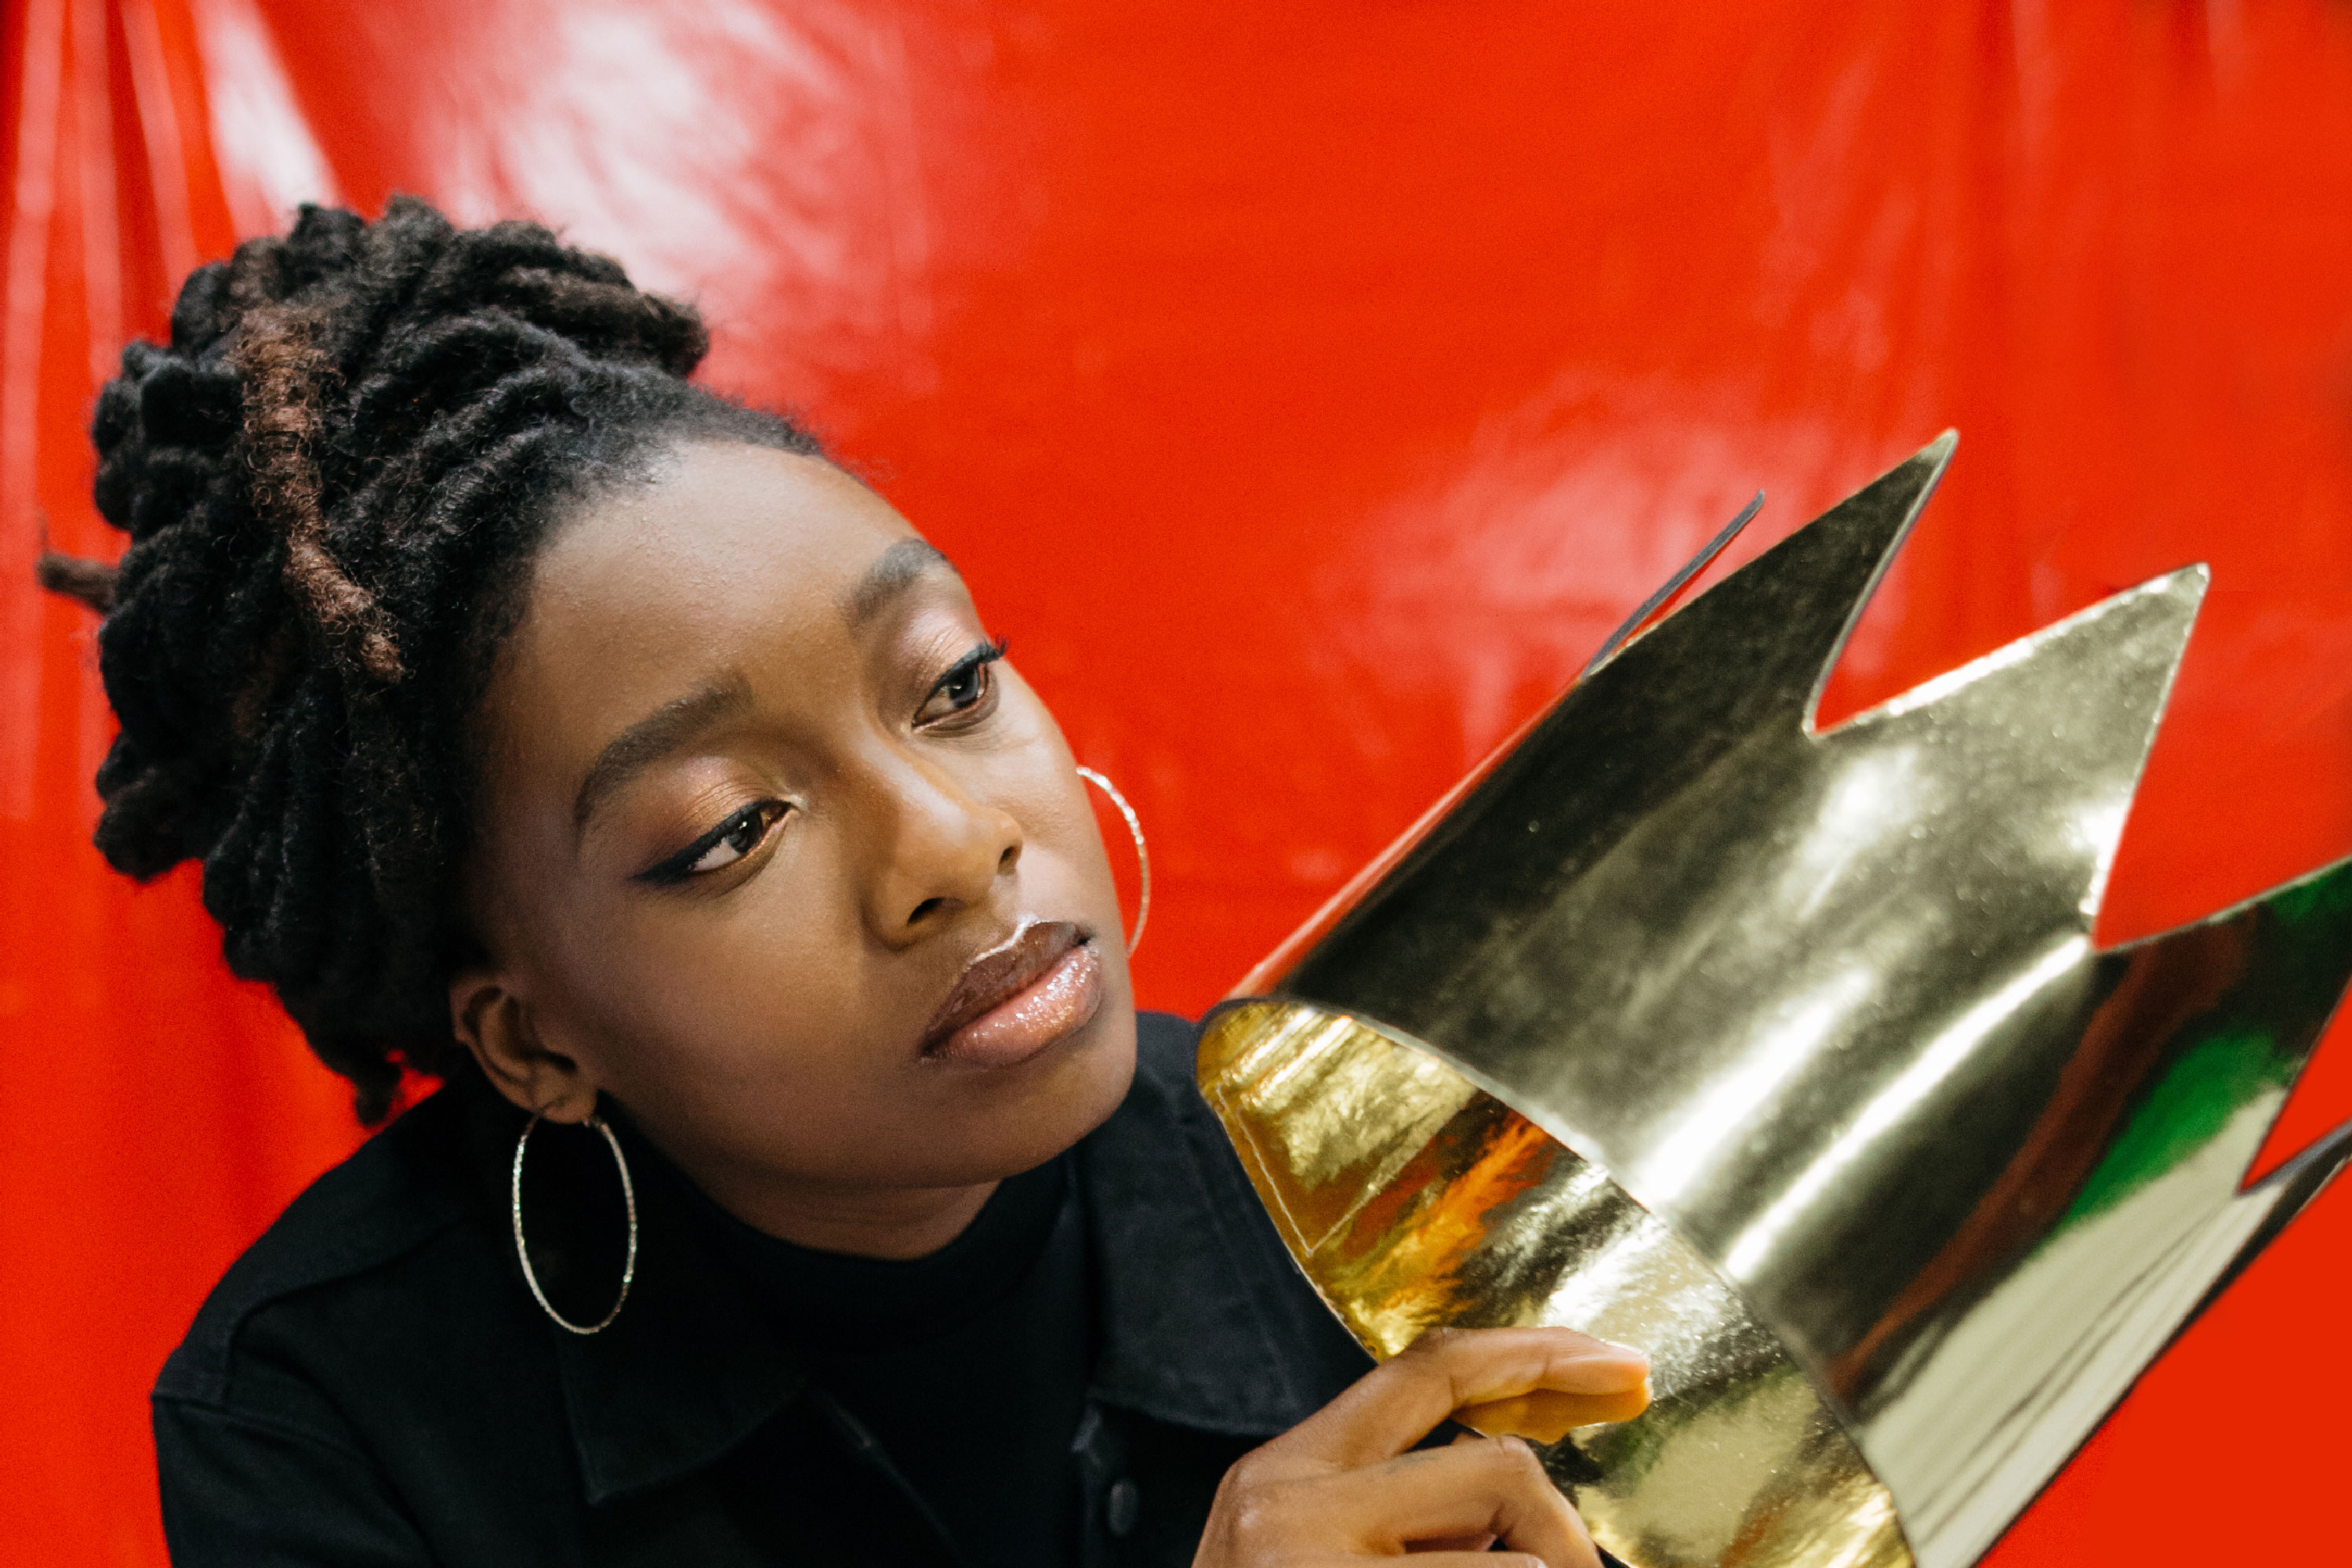 Under the spotlight: Little Simz